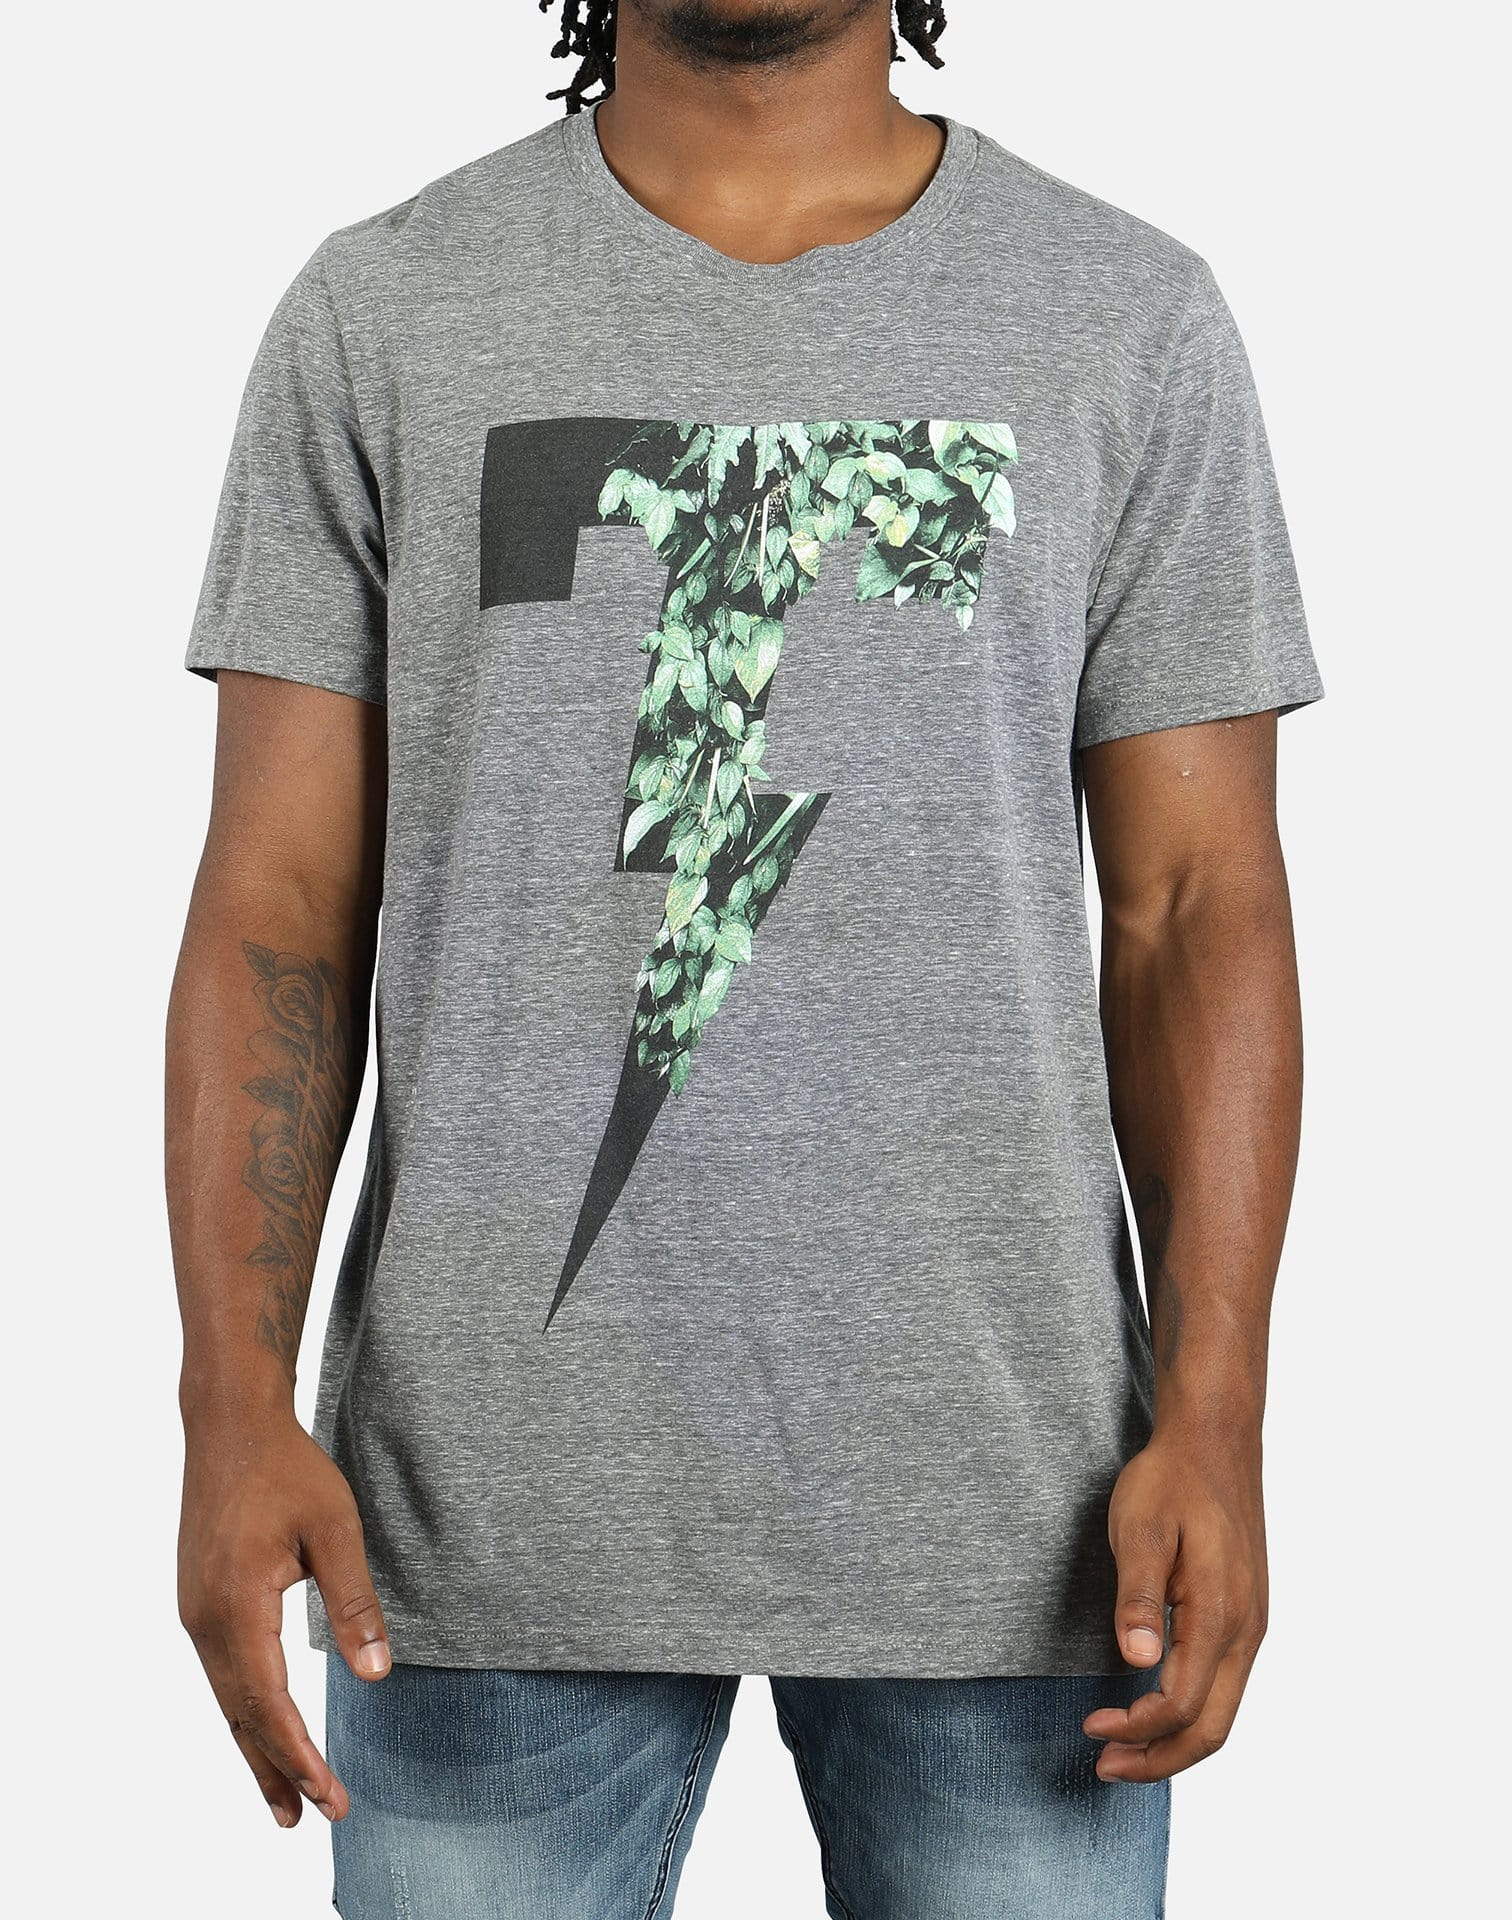 Tackma The Ivy Thunderbolt Tee